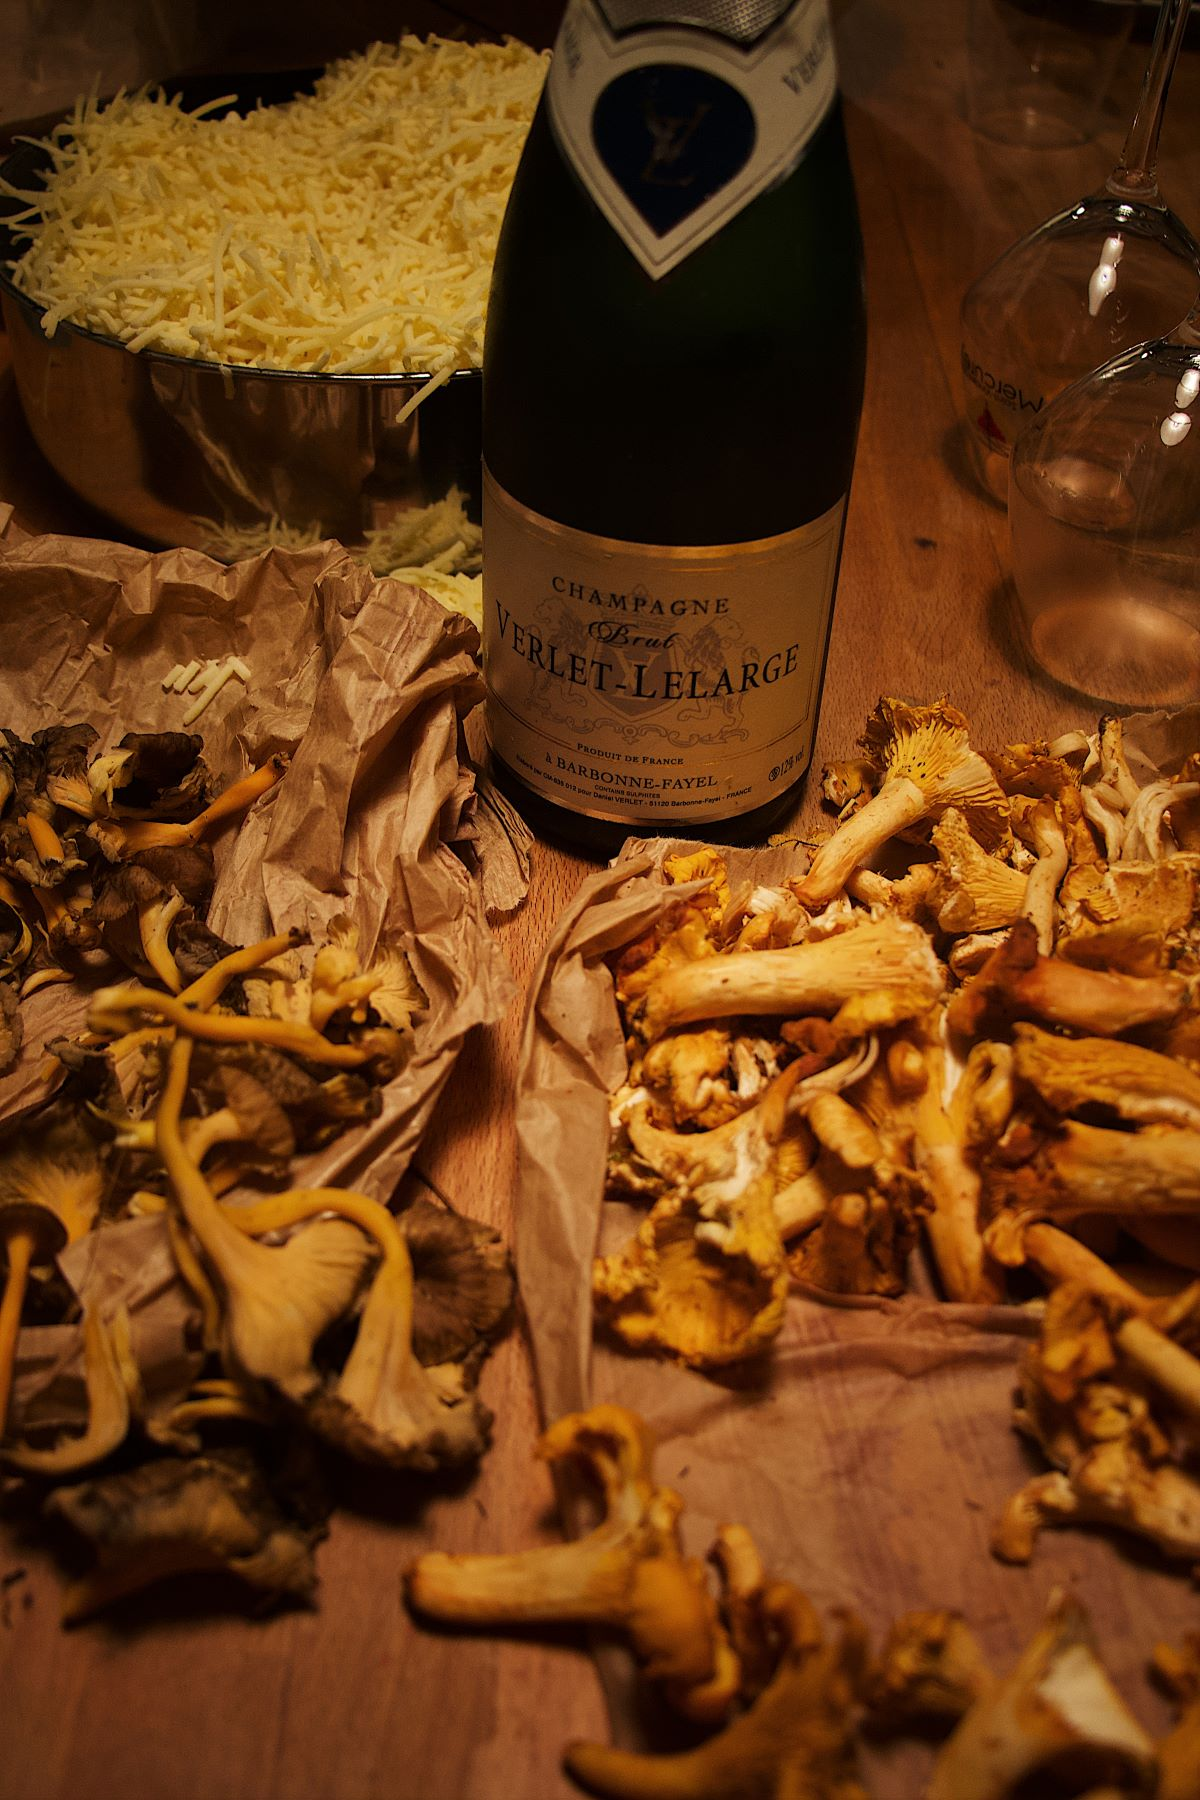 Various wild mushrooms arranged around a bottle of wine and wine glasses, some are laid out on brown parchment and some are in a bowl in the background